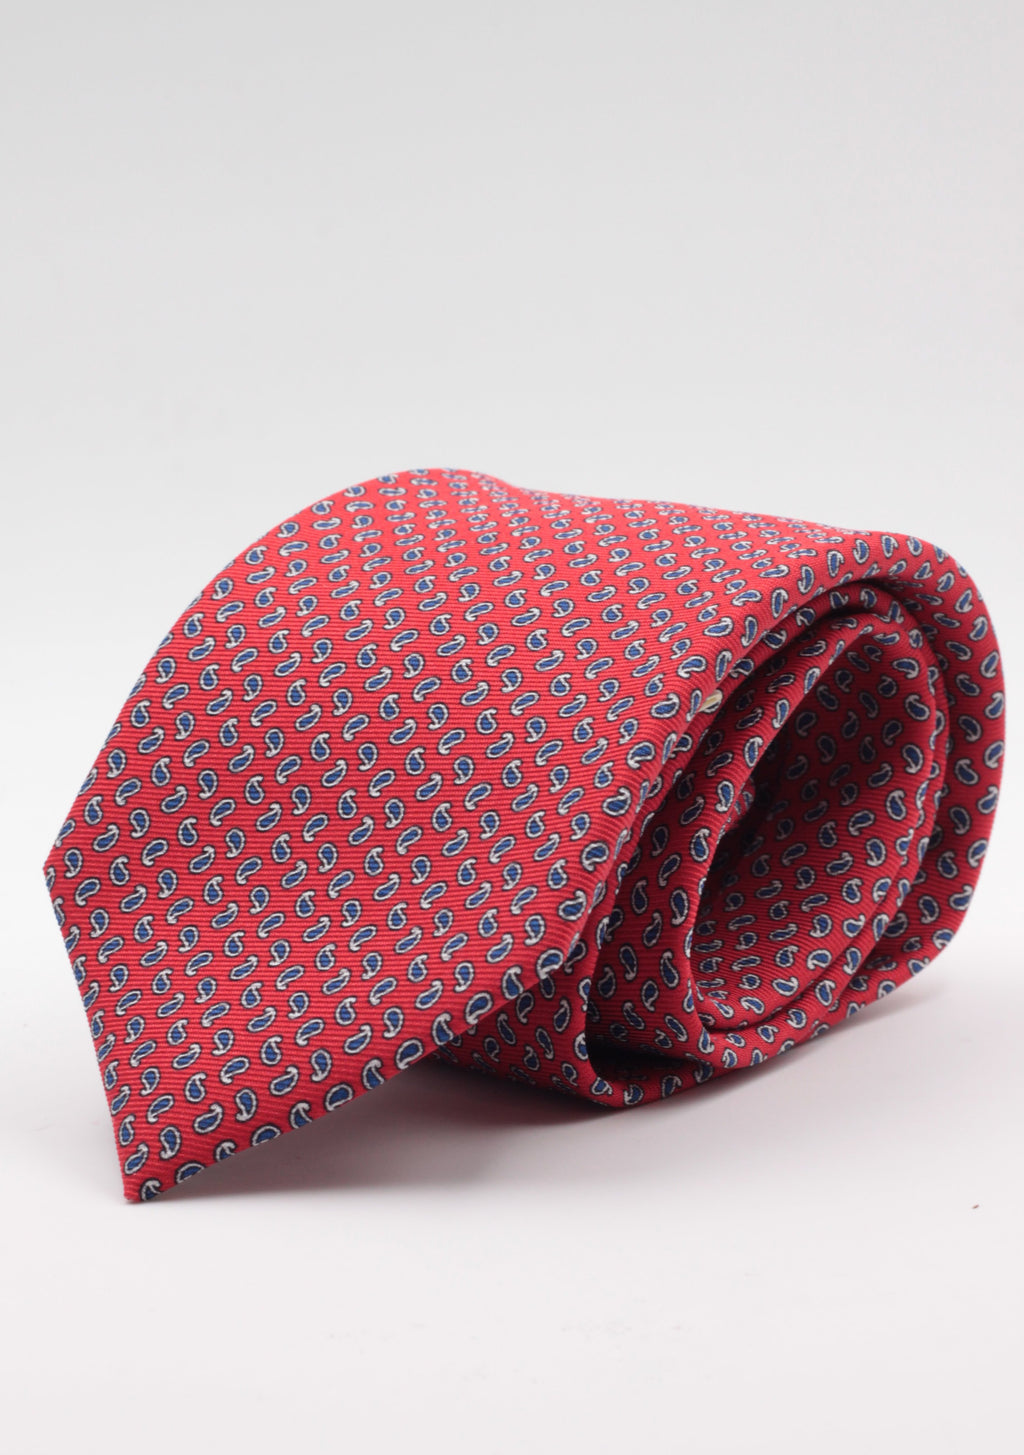 Holliday & Brown for Cruciani & Bella 100% printed Silk Self tipped Red, blue navy and white motif tie Handmade in Italy 8 cm x 150 cm